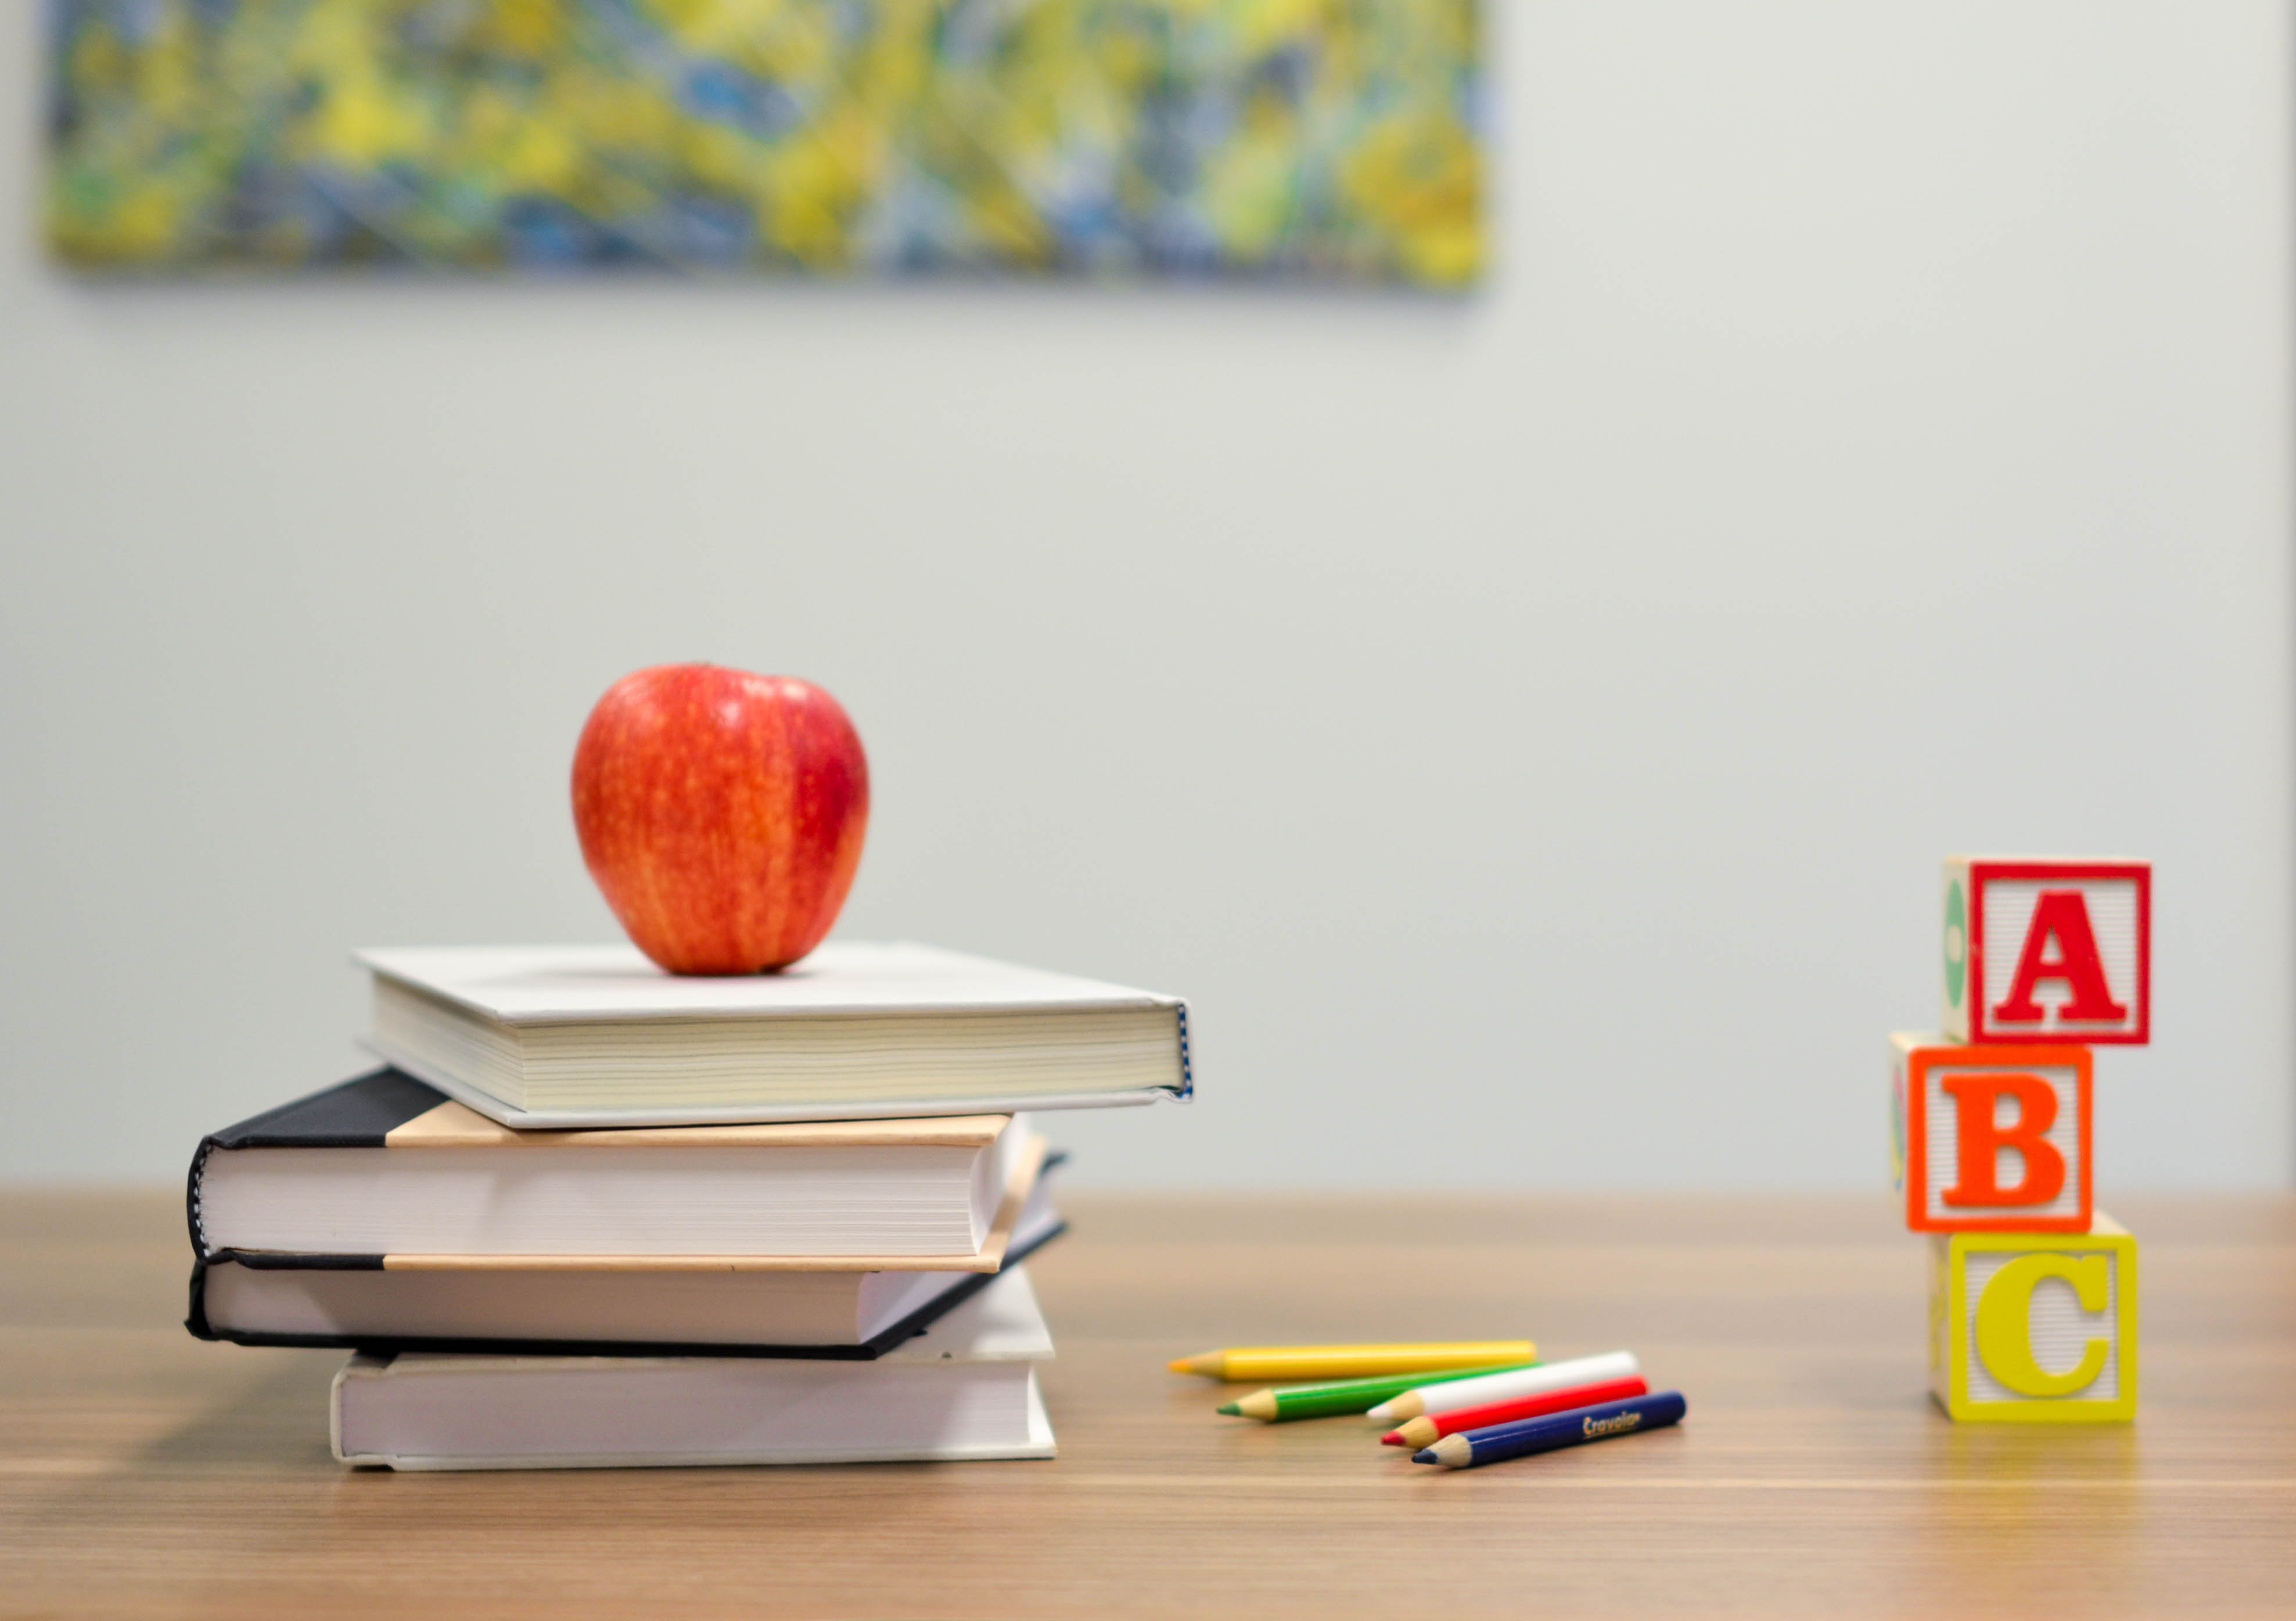 Stack of books with an apple on top, colored pencils and A,B,C blocks. sitting on a table.